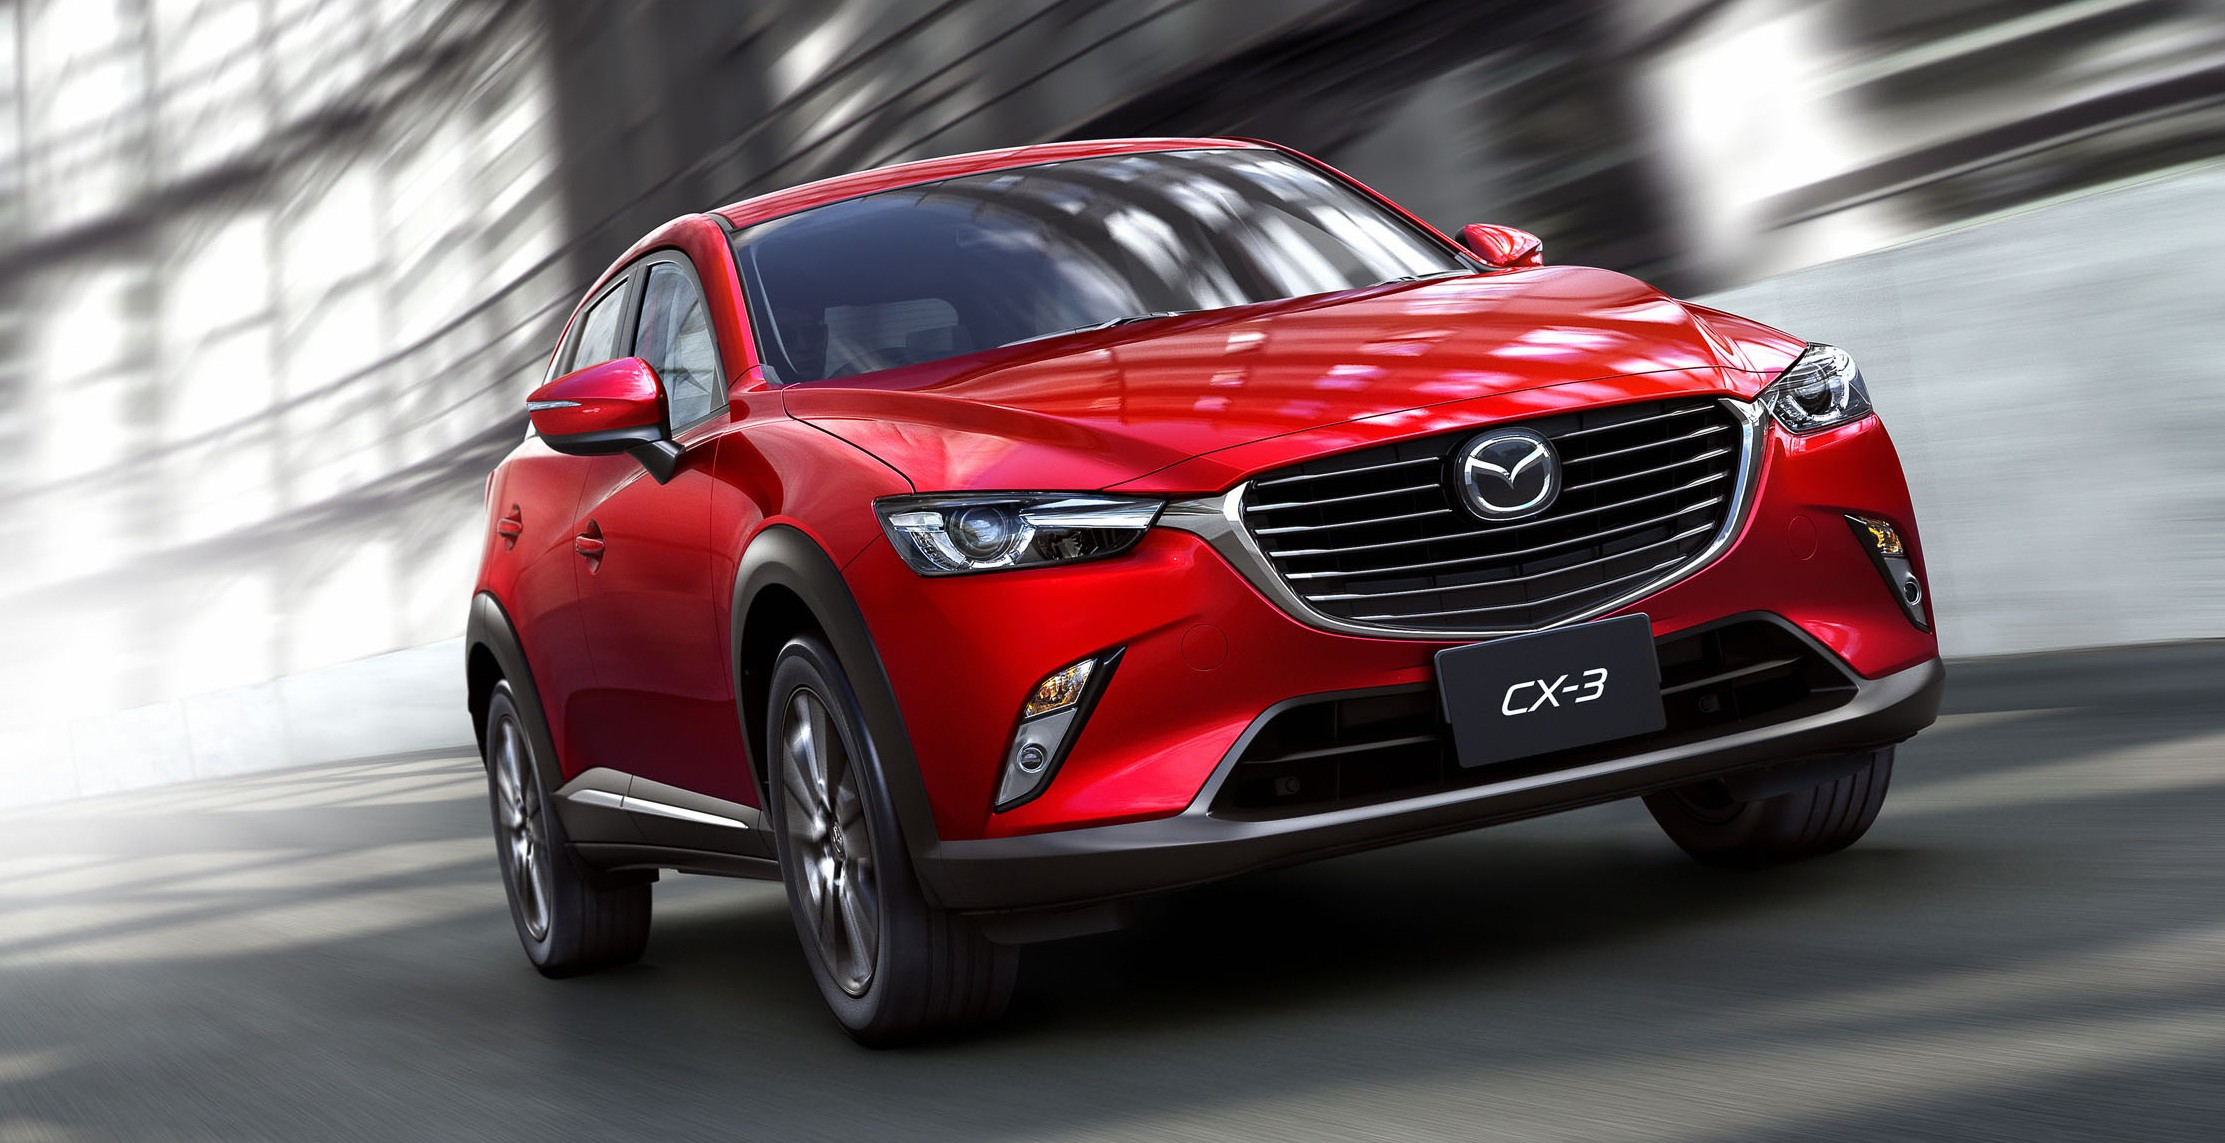 mazda cx 3 new b segment suv officially unveiled image 289200. Black Bedroom Furniture Sets. Home Design Ideas